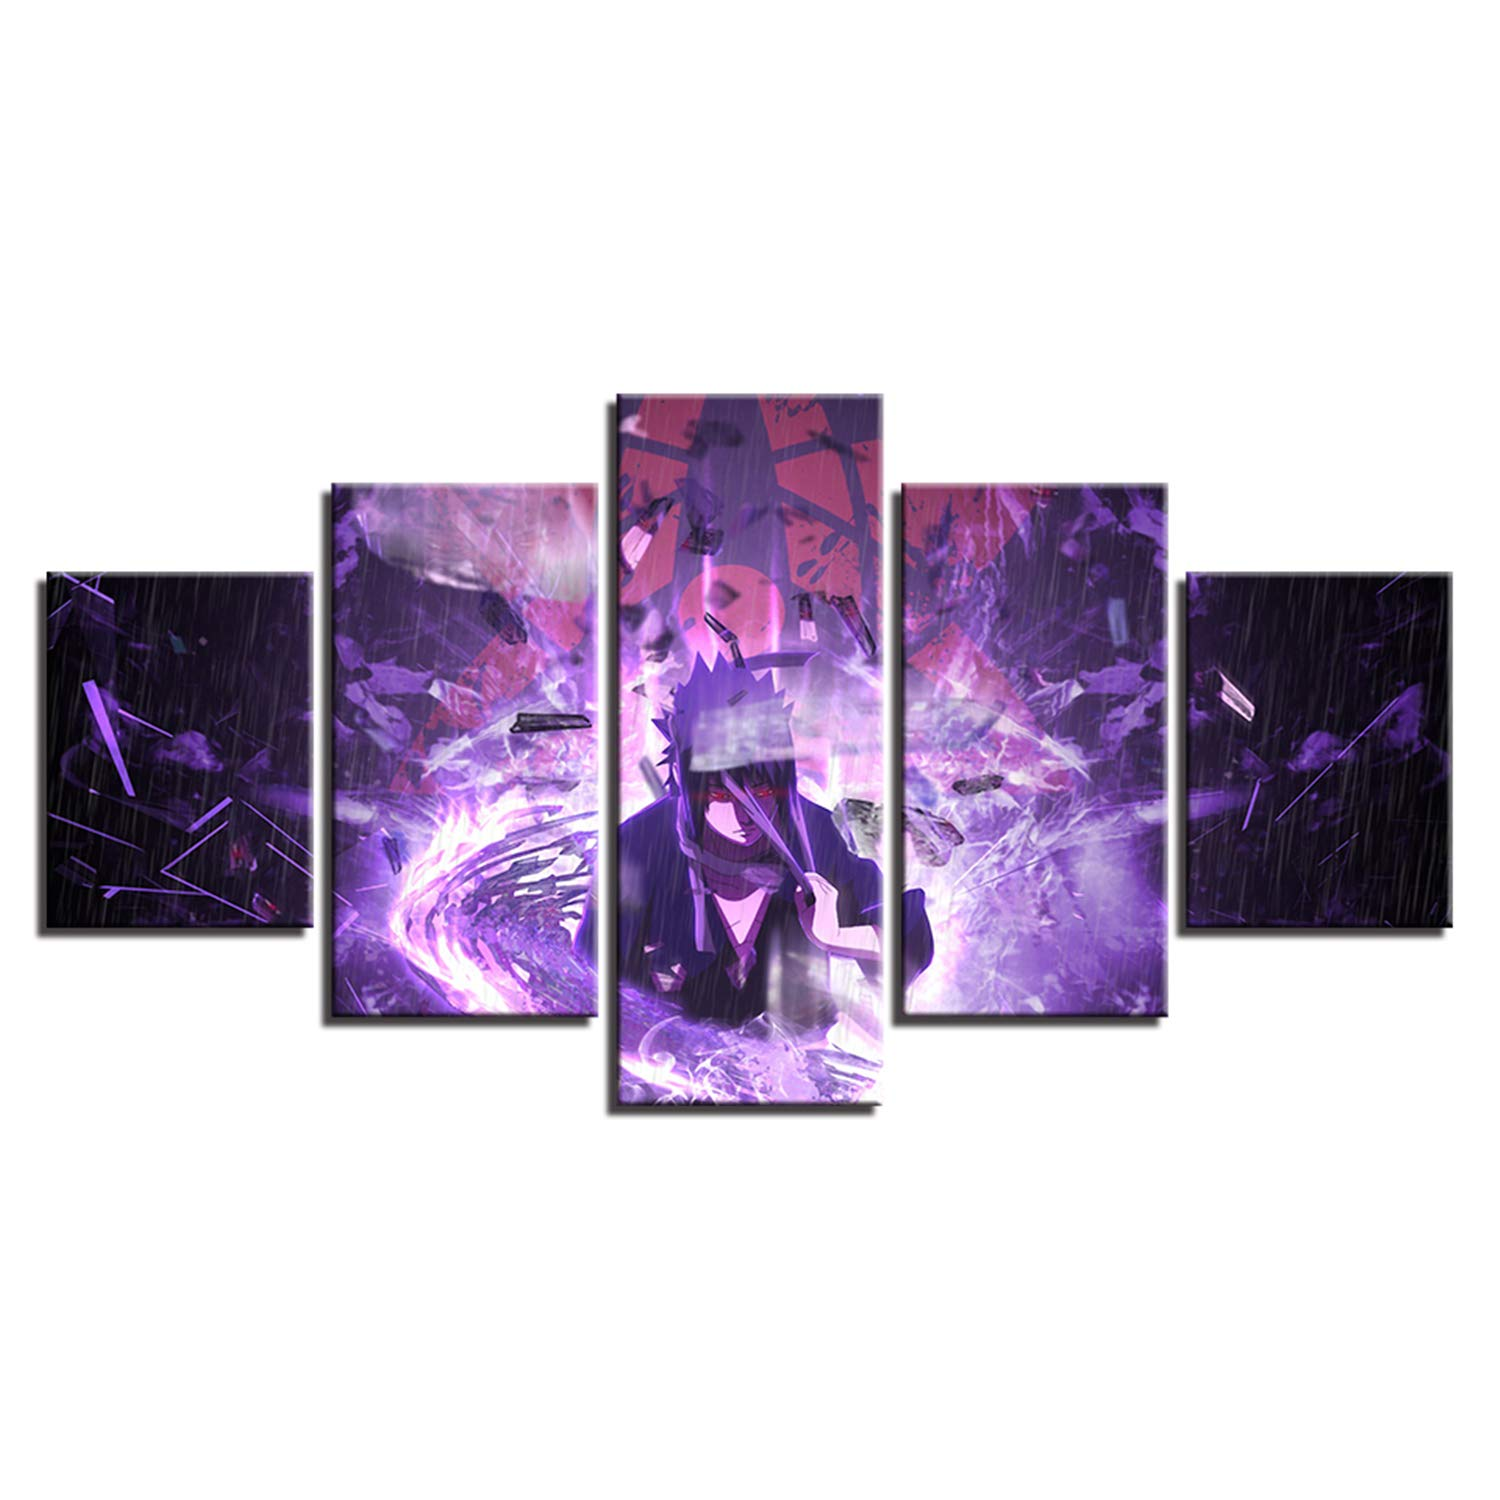 JESC Art Posters Prints Painting Wall Framework 5 Panel Cartoon Naruto Modular Canvas Character Pictures Living Room Home Décor